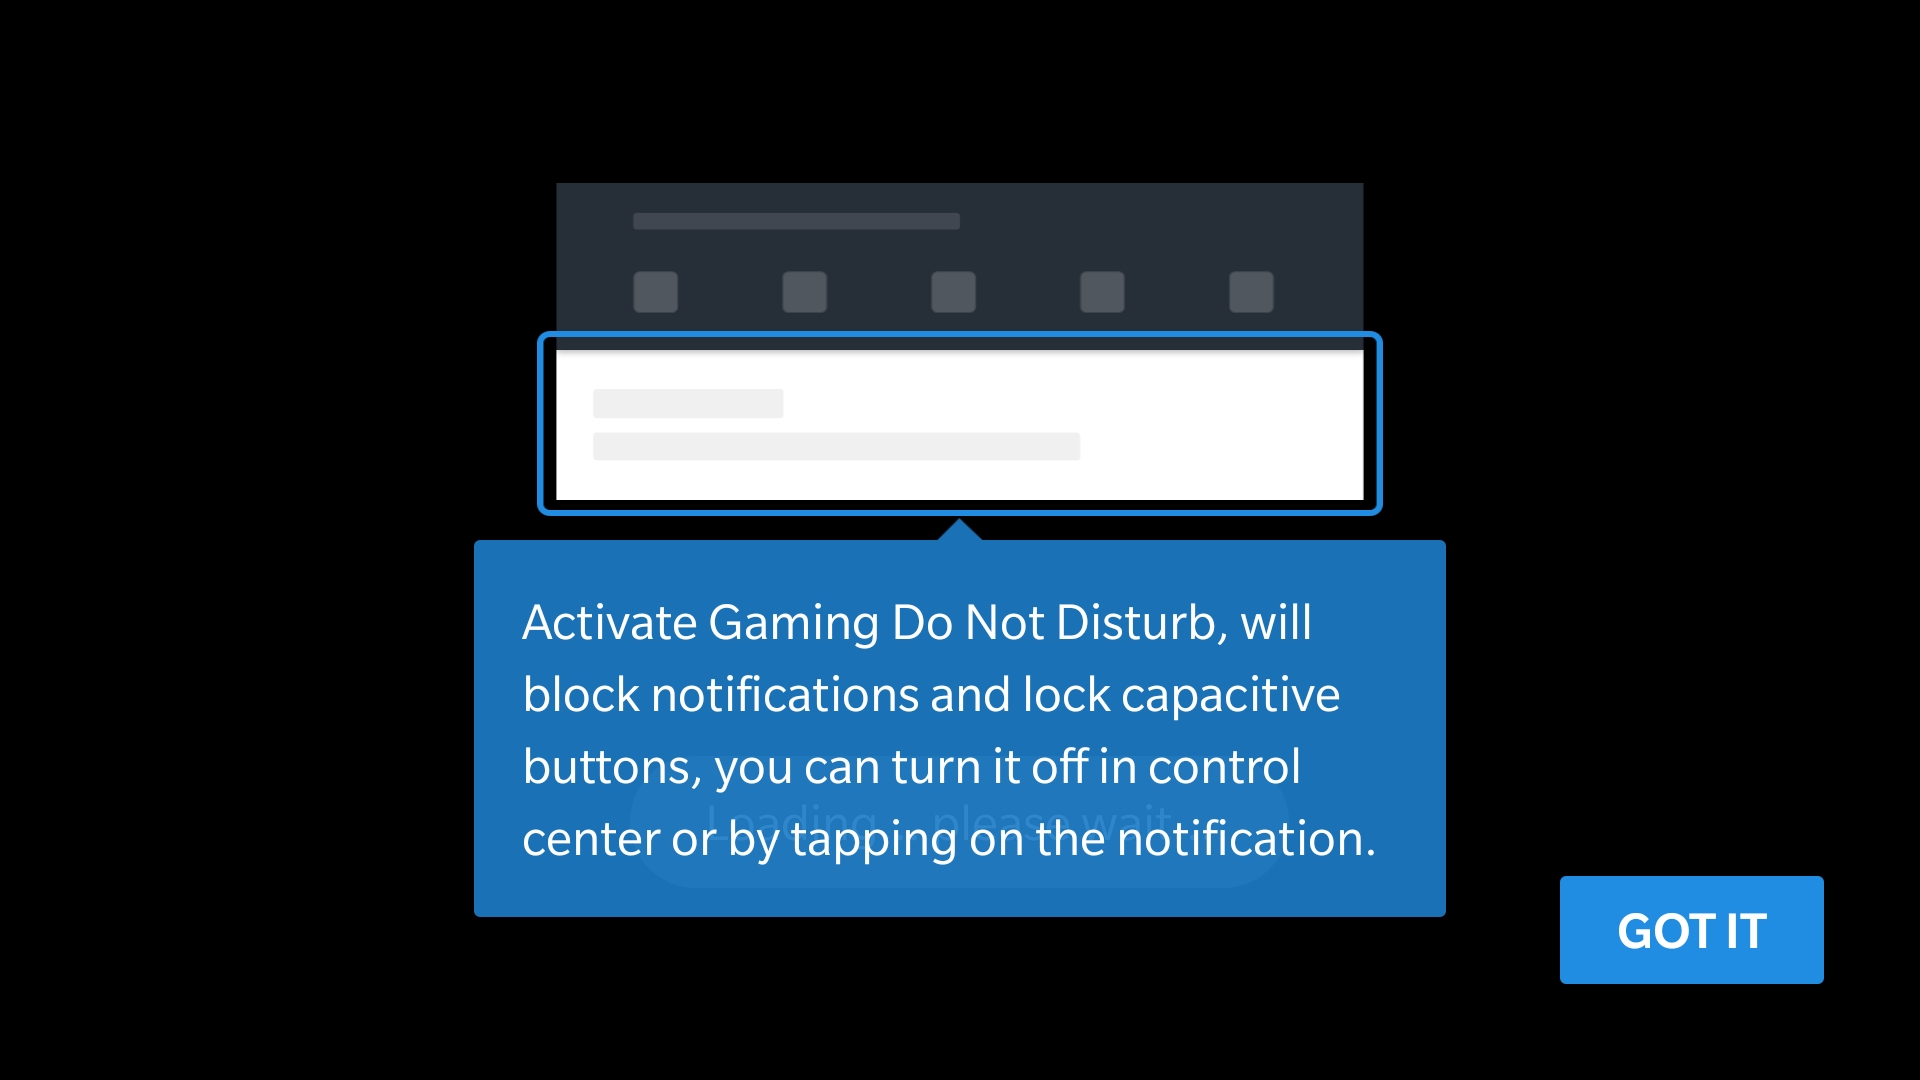 you can access gaming do not disturb in settings advanced gaming do not disturb and from there it can be enabled or disabled for individual